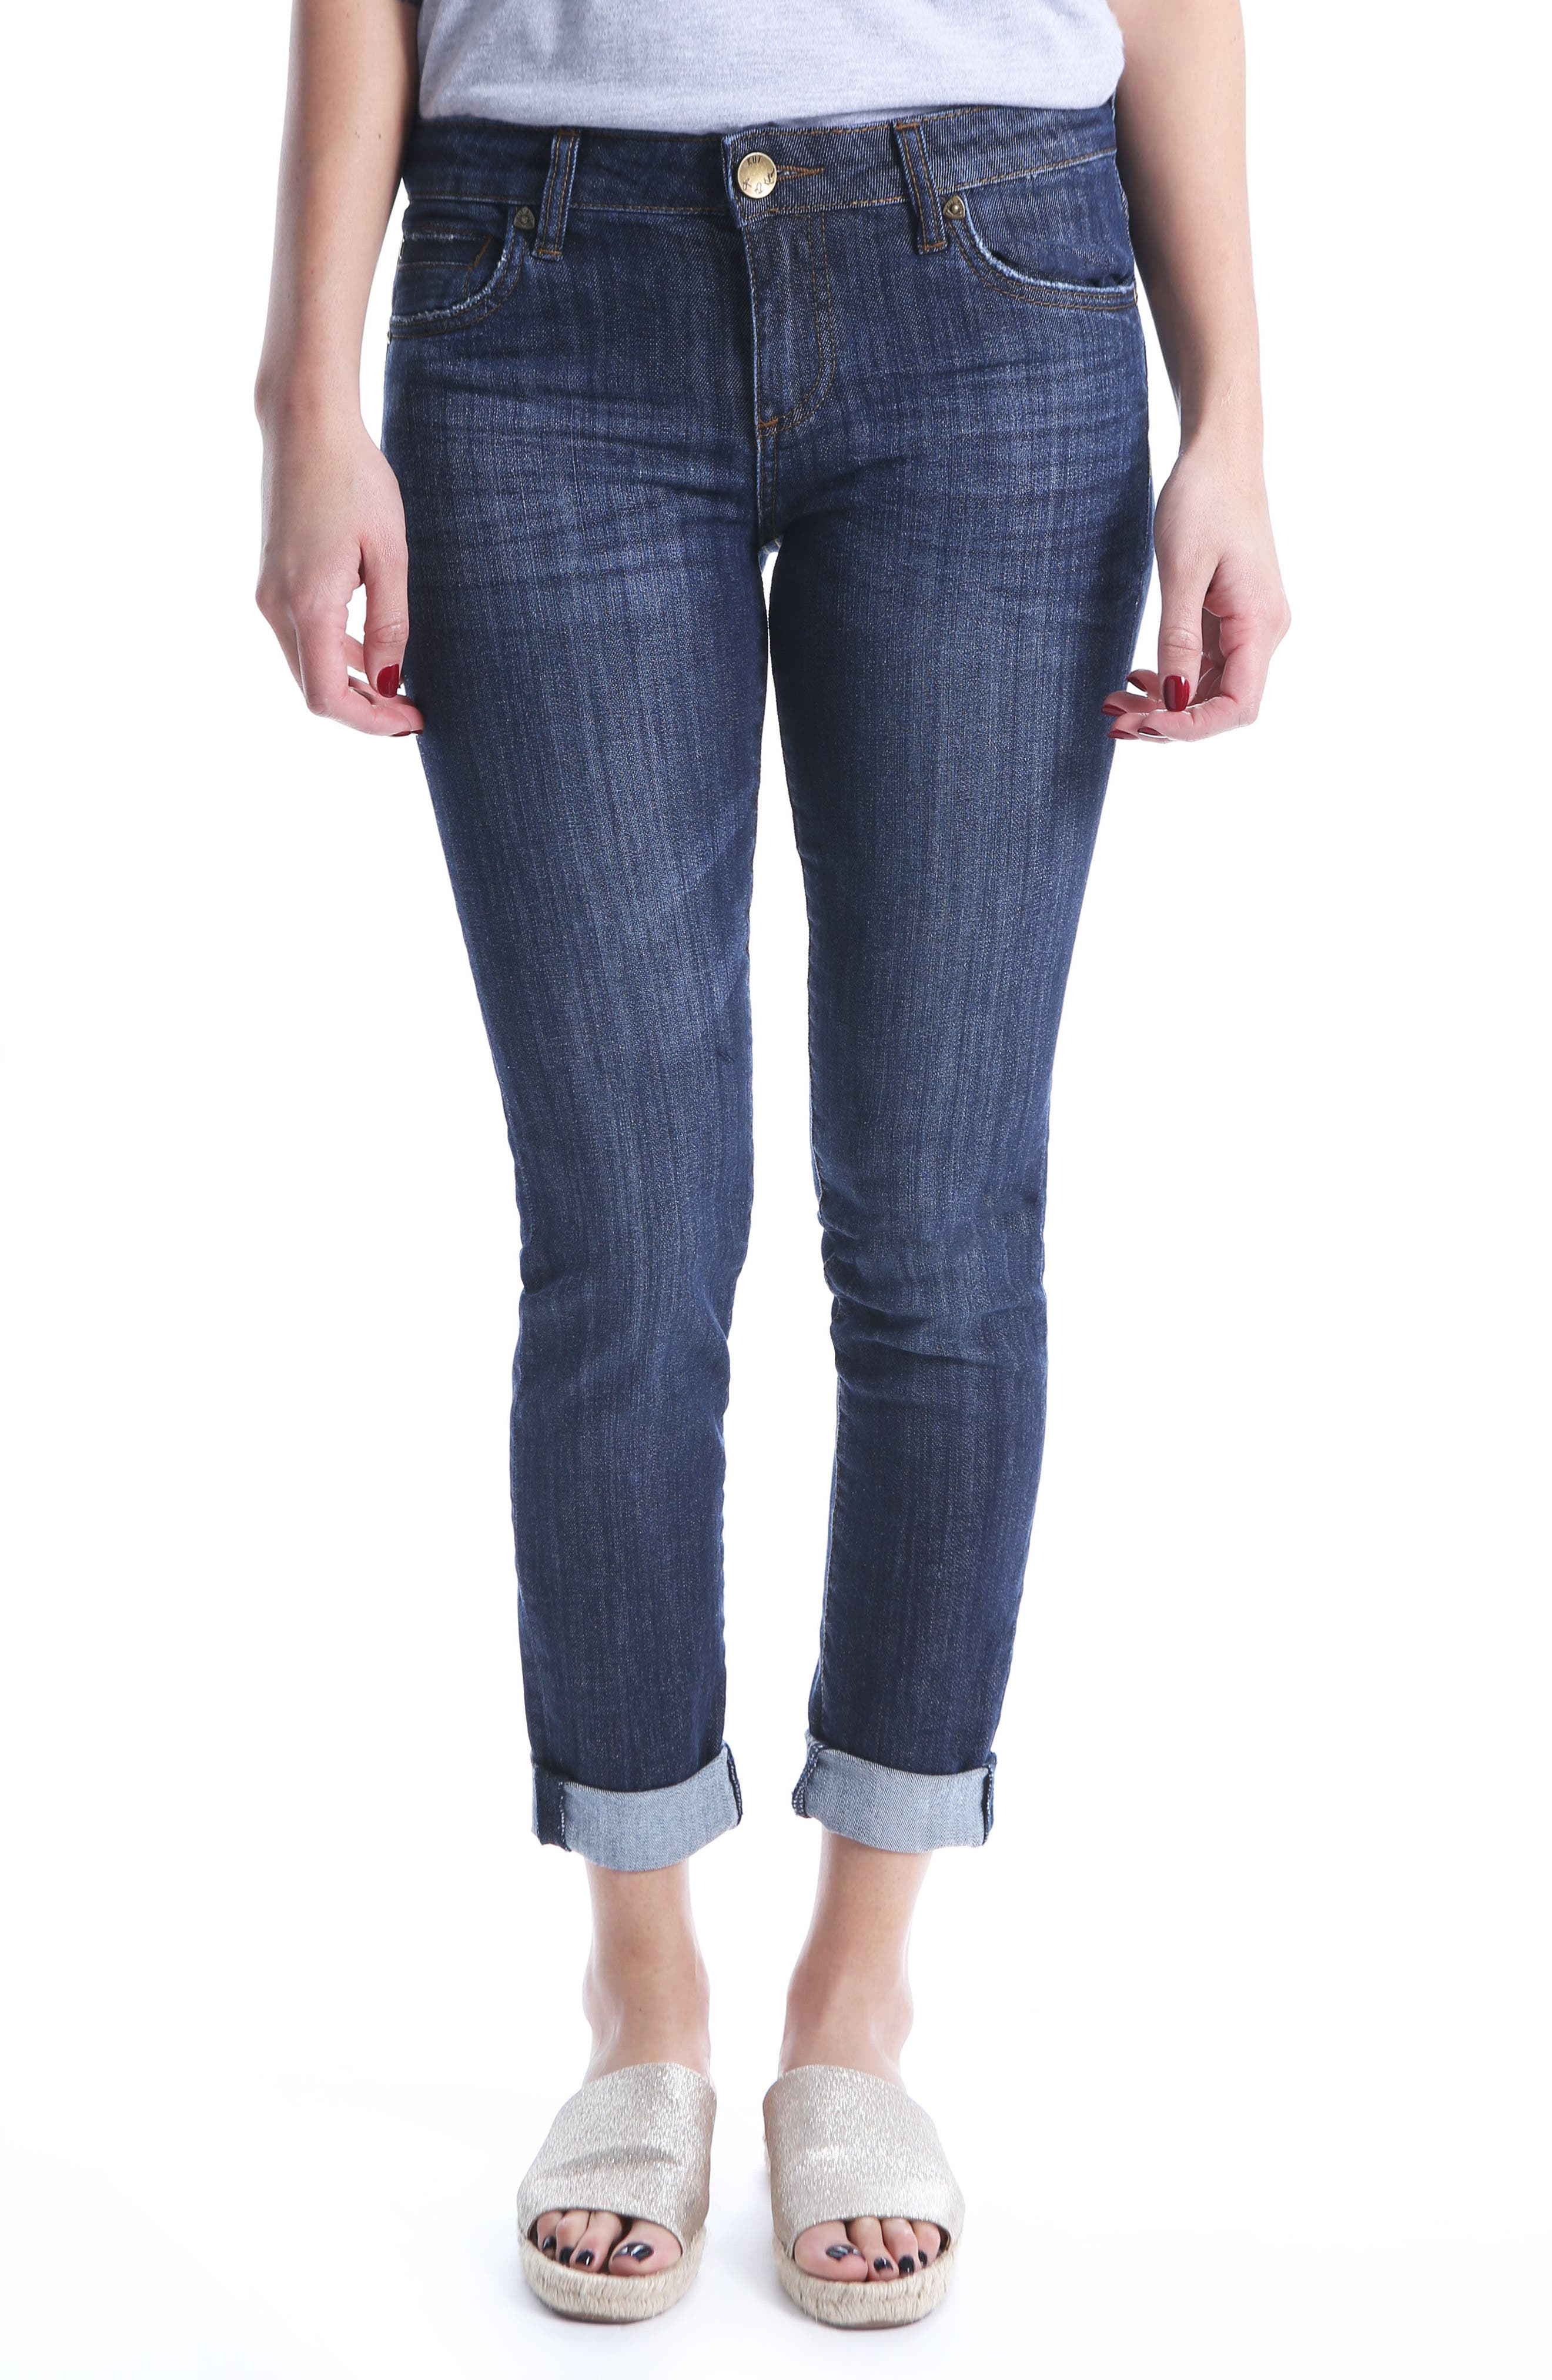 Alternate Image 1 Selected - KUT from the Kloth Catherine Boyfriend Jeans (Regular & Petite) (Enticement)